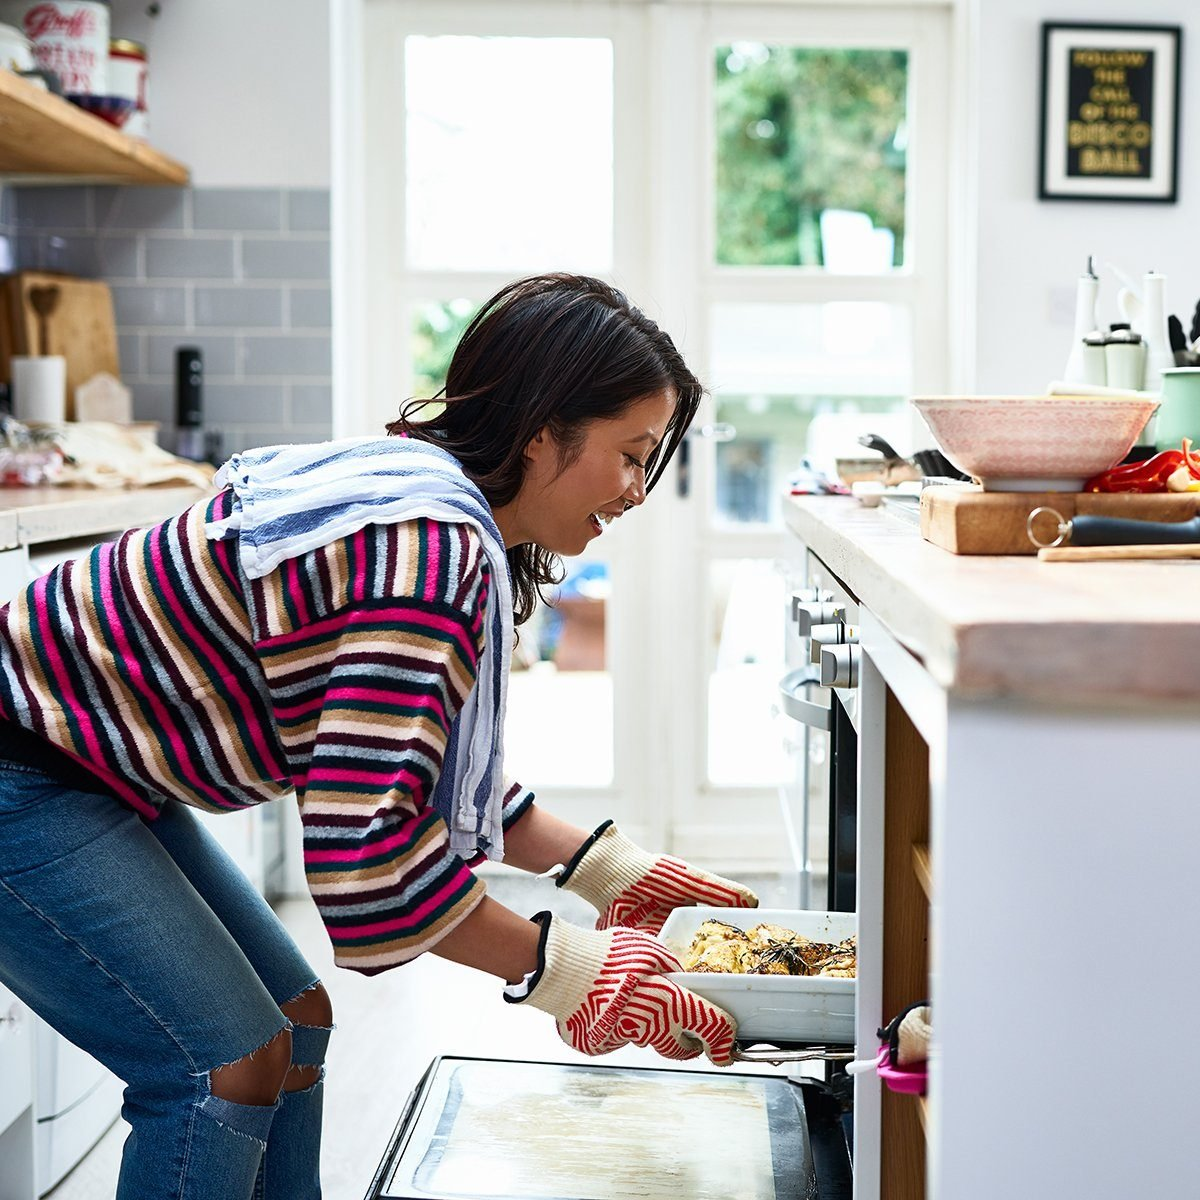 Side view of mid adult woman cooking in kitchen, bending down wearing oven gloves, smiling, satisfaction, healthy eating